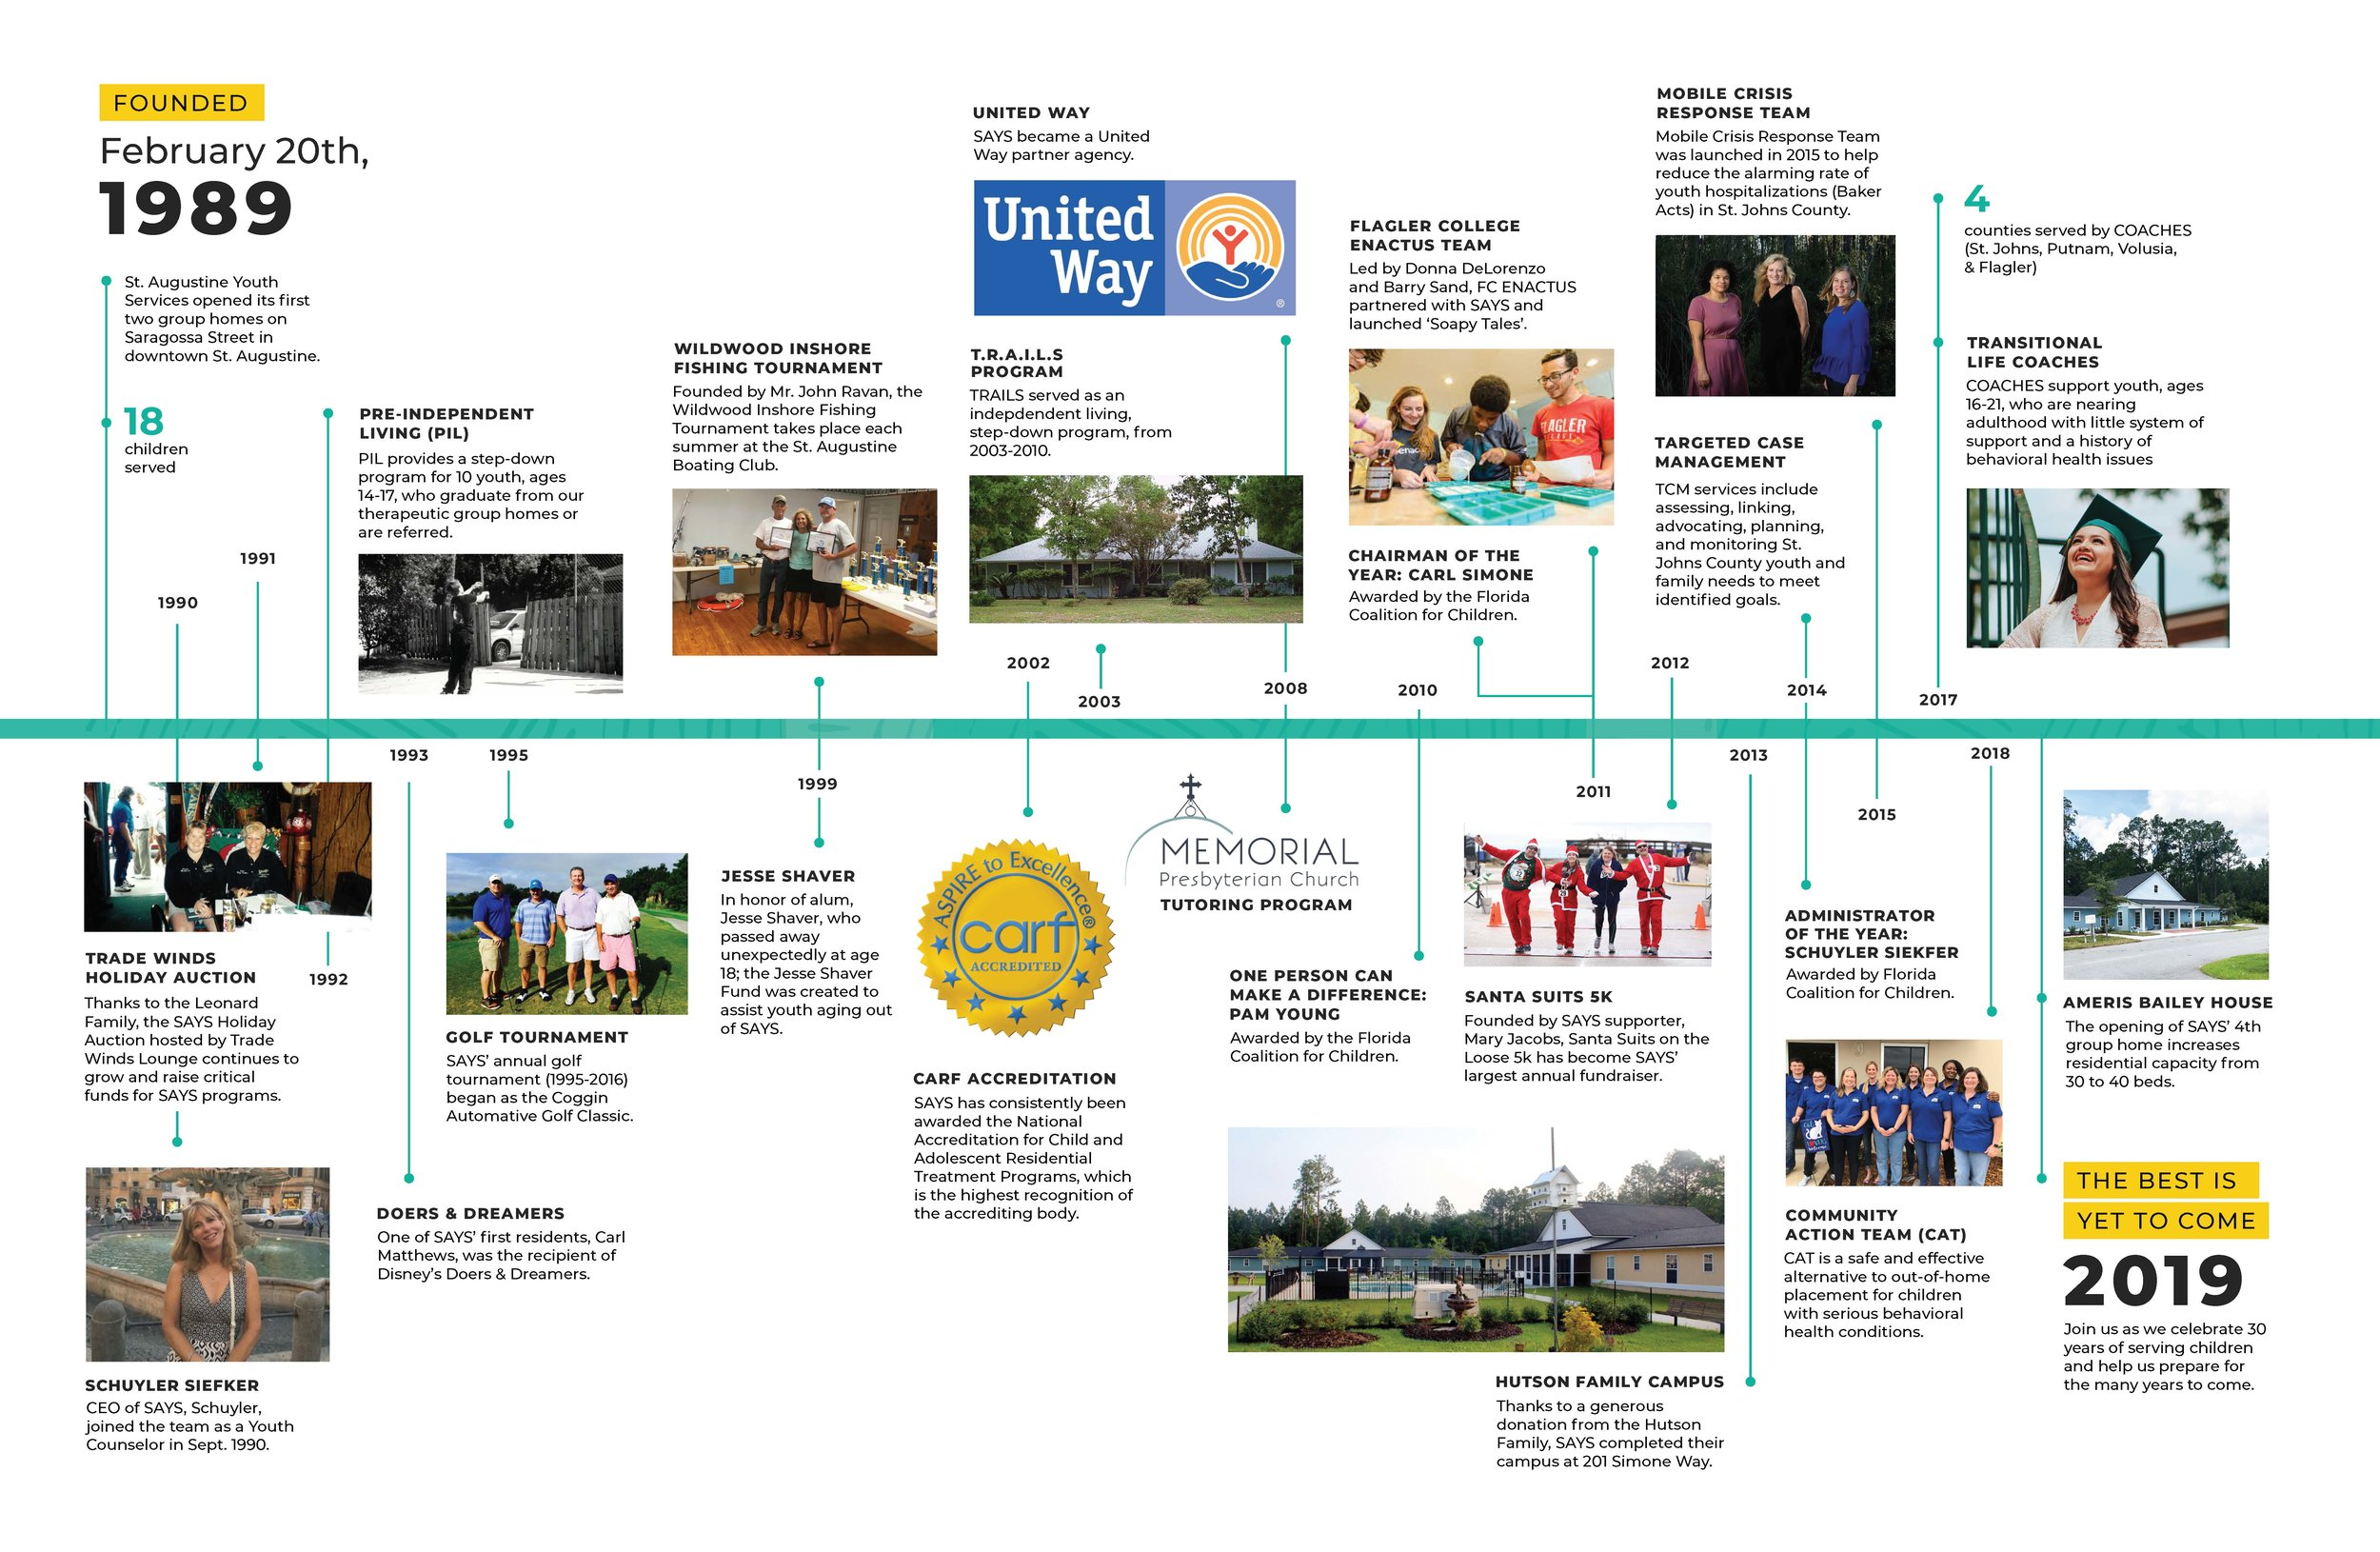 Check out our full 30th Anniversary booklet by clicking the image!